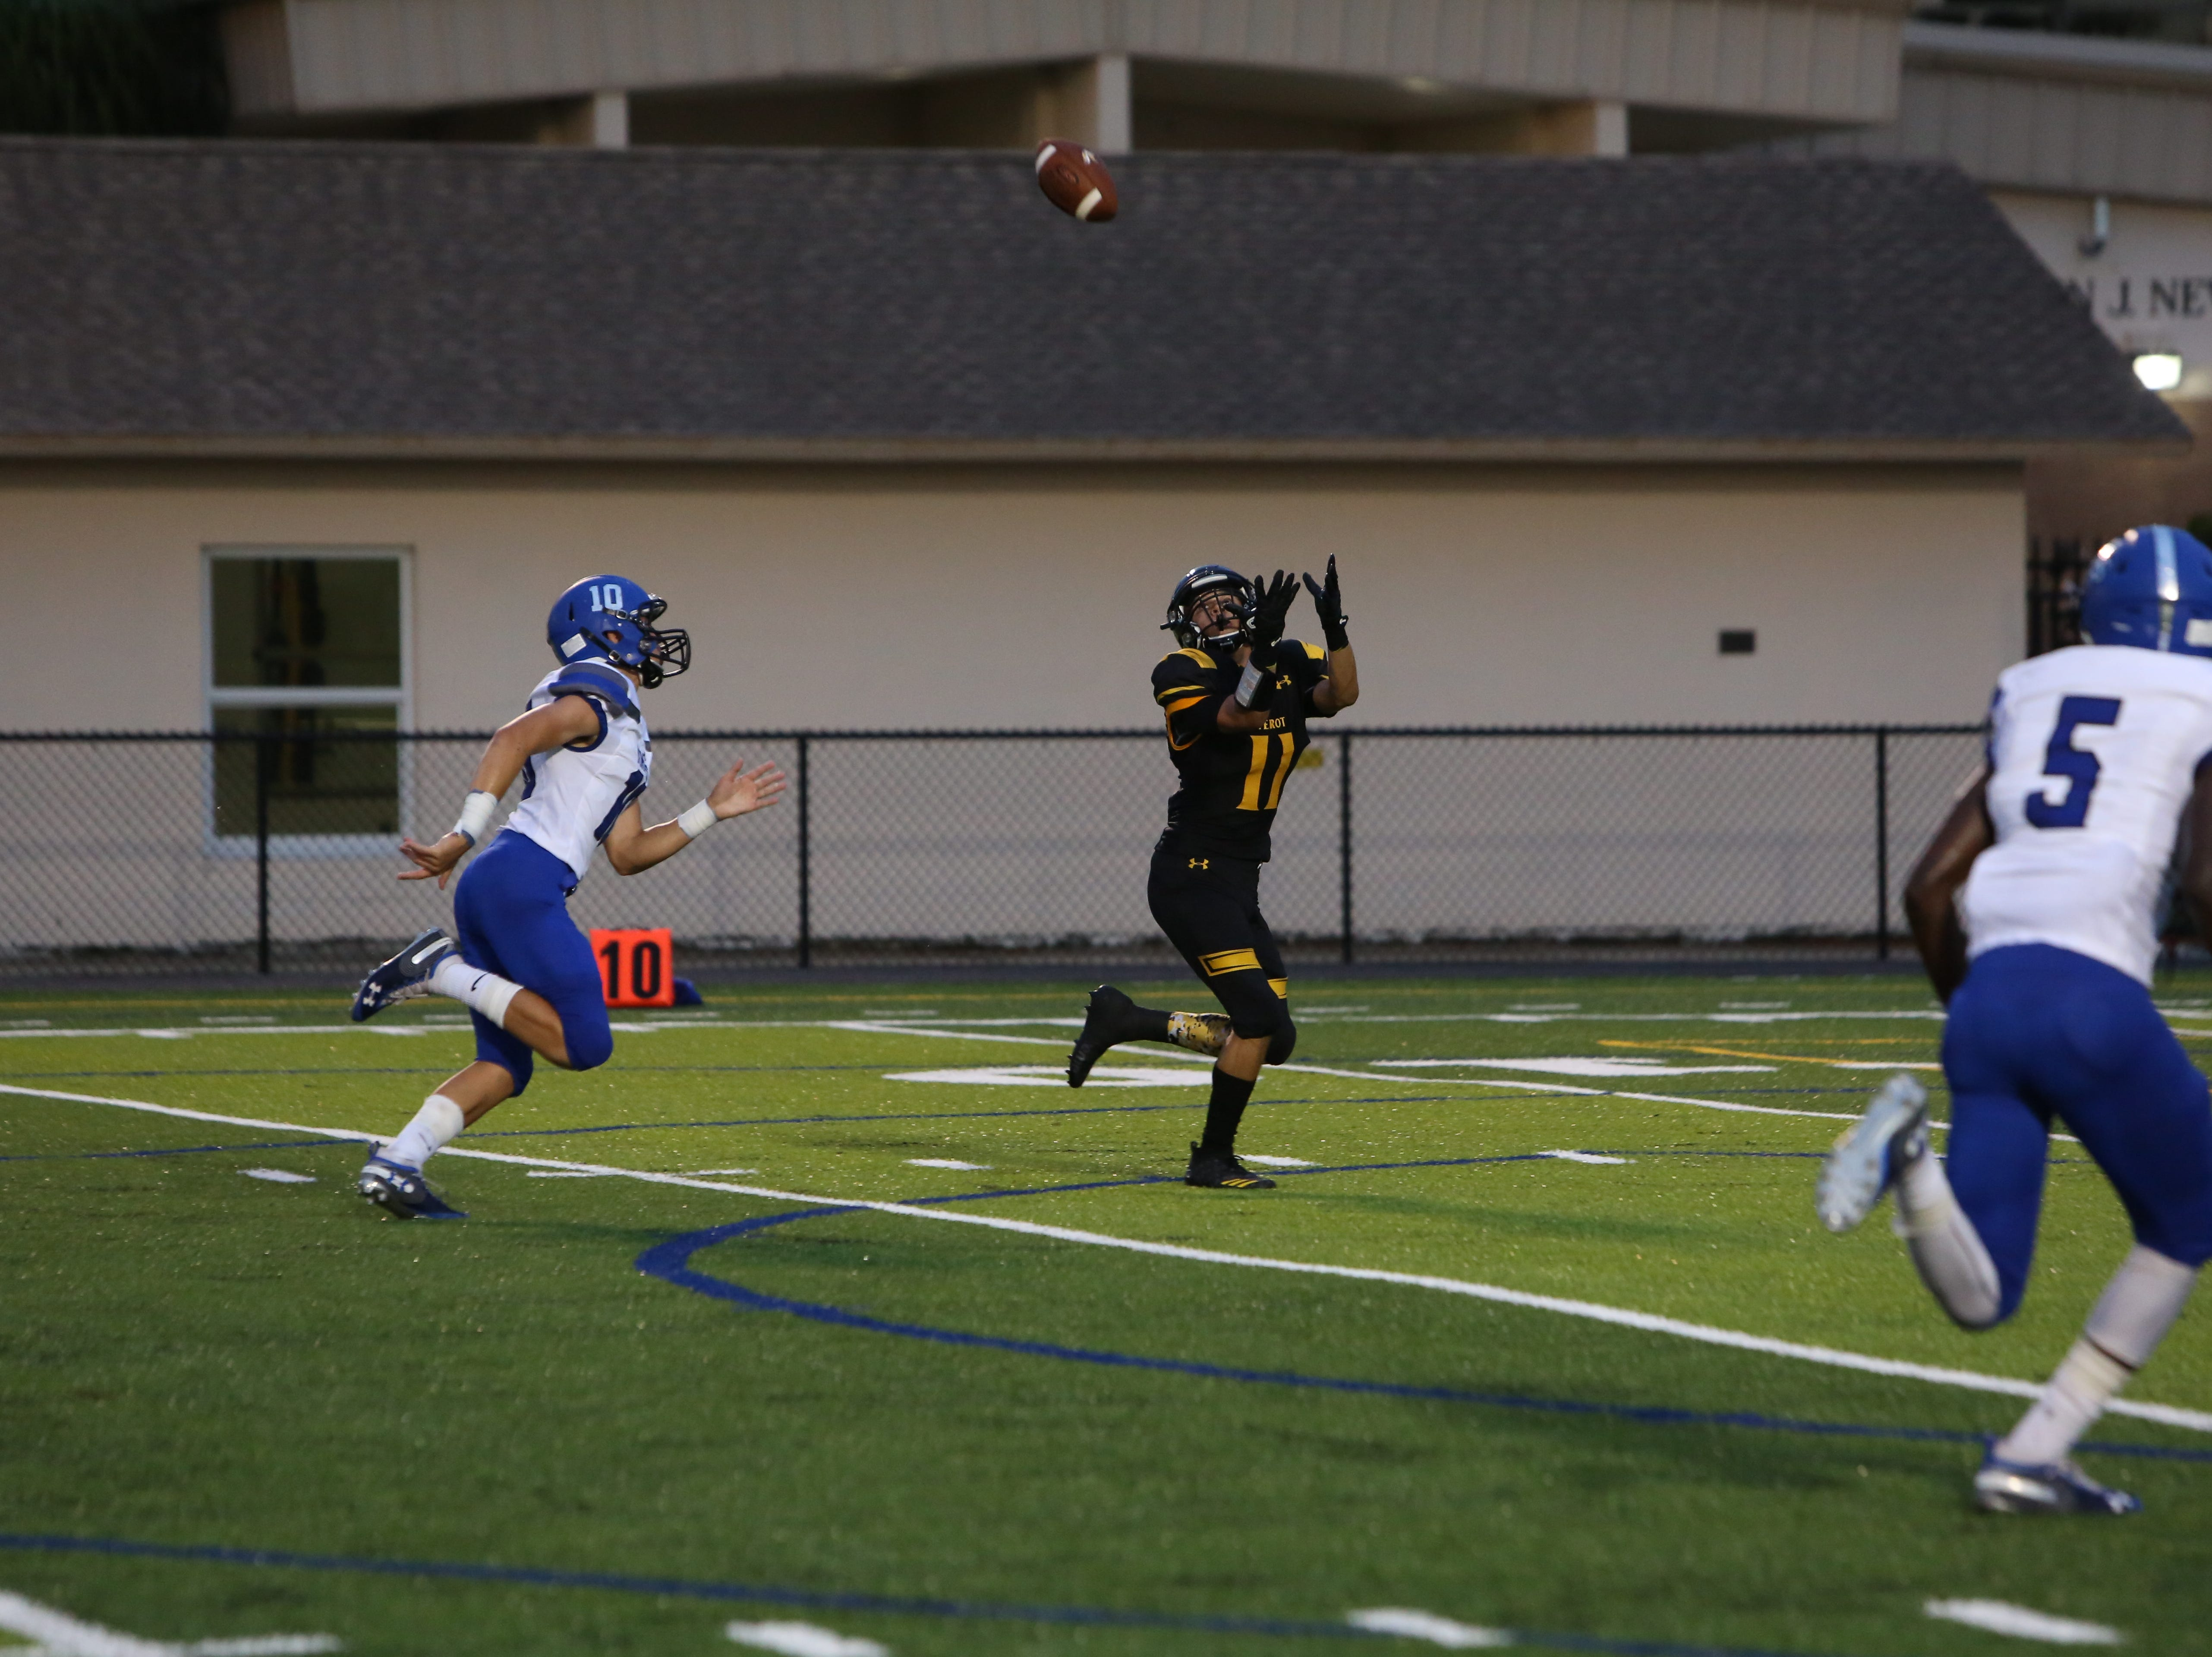 Jaidin Brown hauls in a 41-yard TD pass from Bishop Verot against laneland Christian.